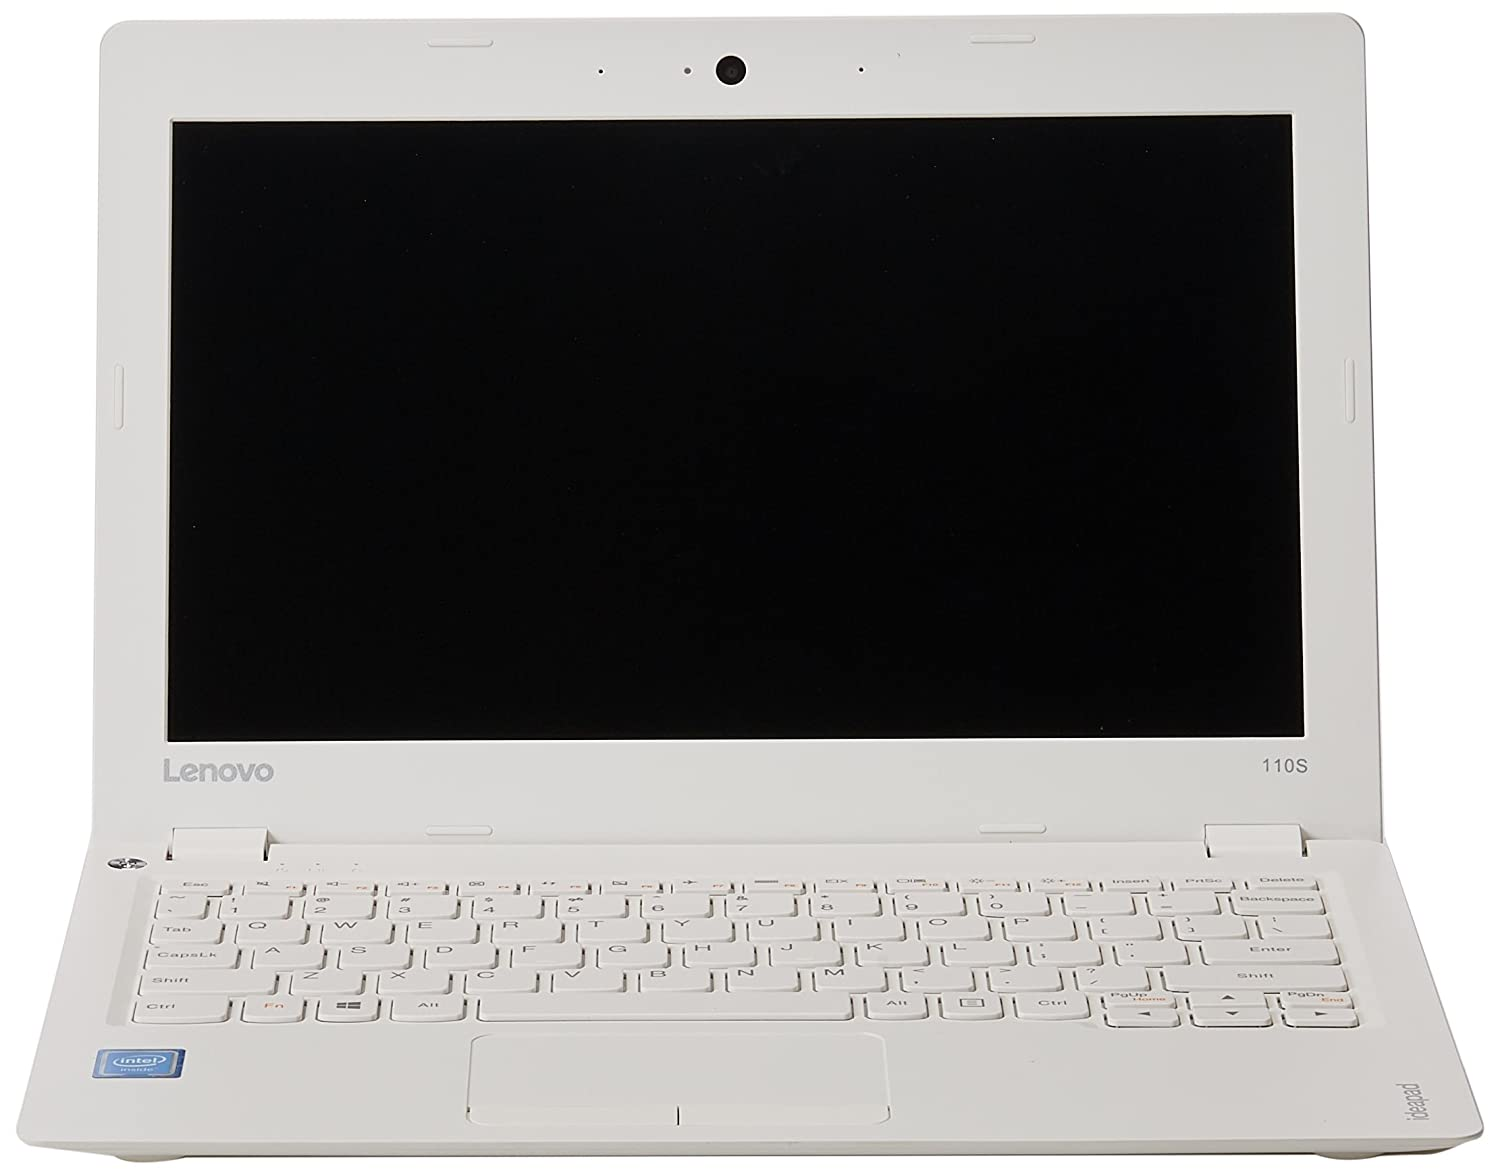 Lenovo Ideapad 110s - 11.6 Laptop - 2GB Memory, 32GB eMMC Flash Storage (White) by Lenovo B01N05RBC4